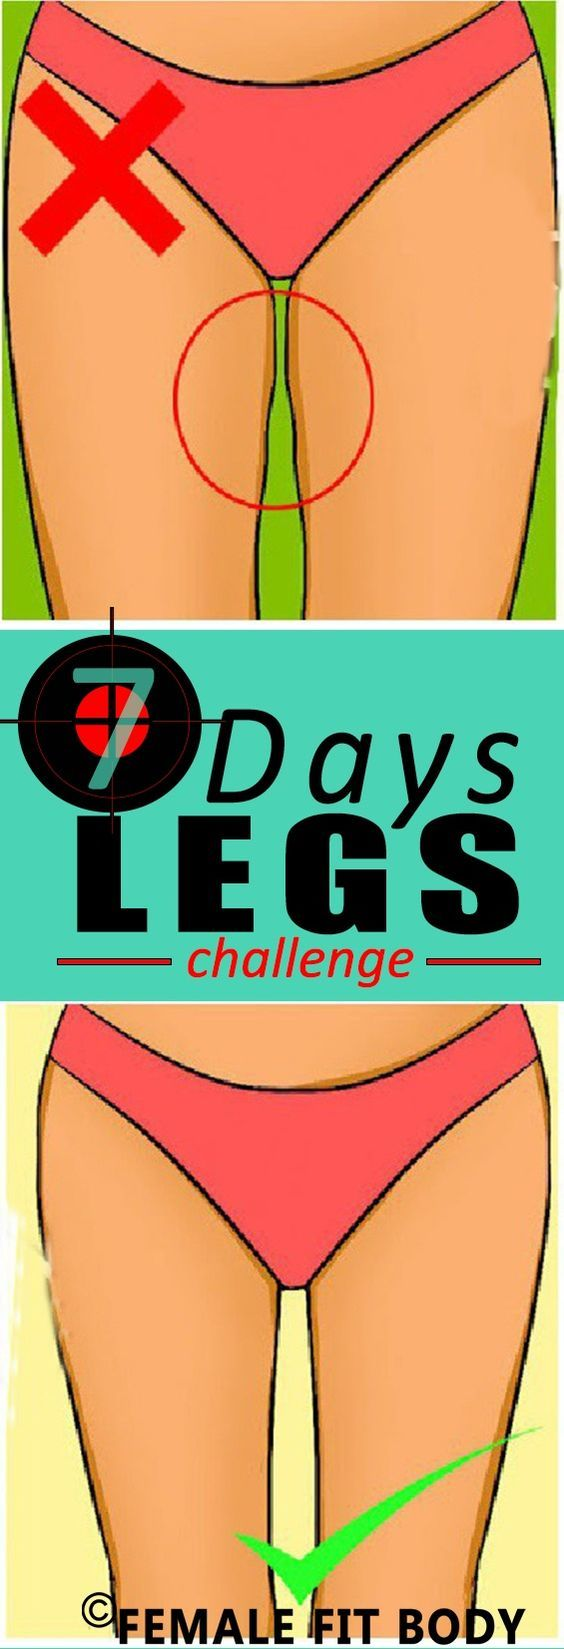 There's no denying that a nice pair of legs can make any outfit look quite amazing. With summer in full gear, it is time to put the jeans away for the season, tone up those legs that have bee…